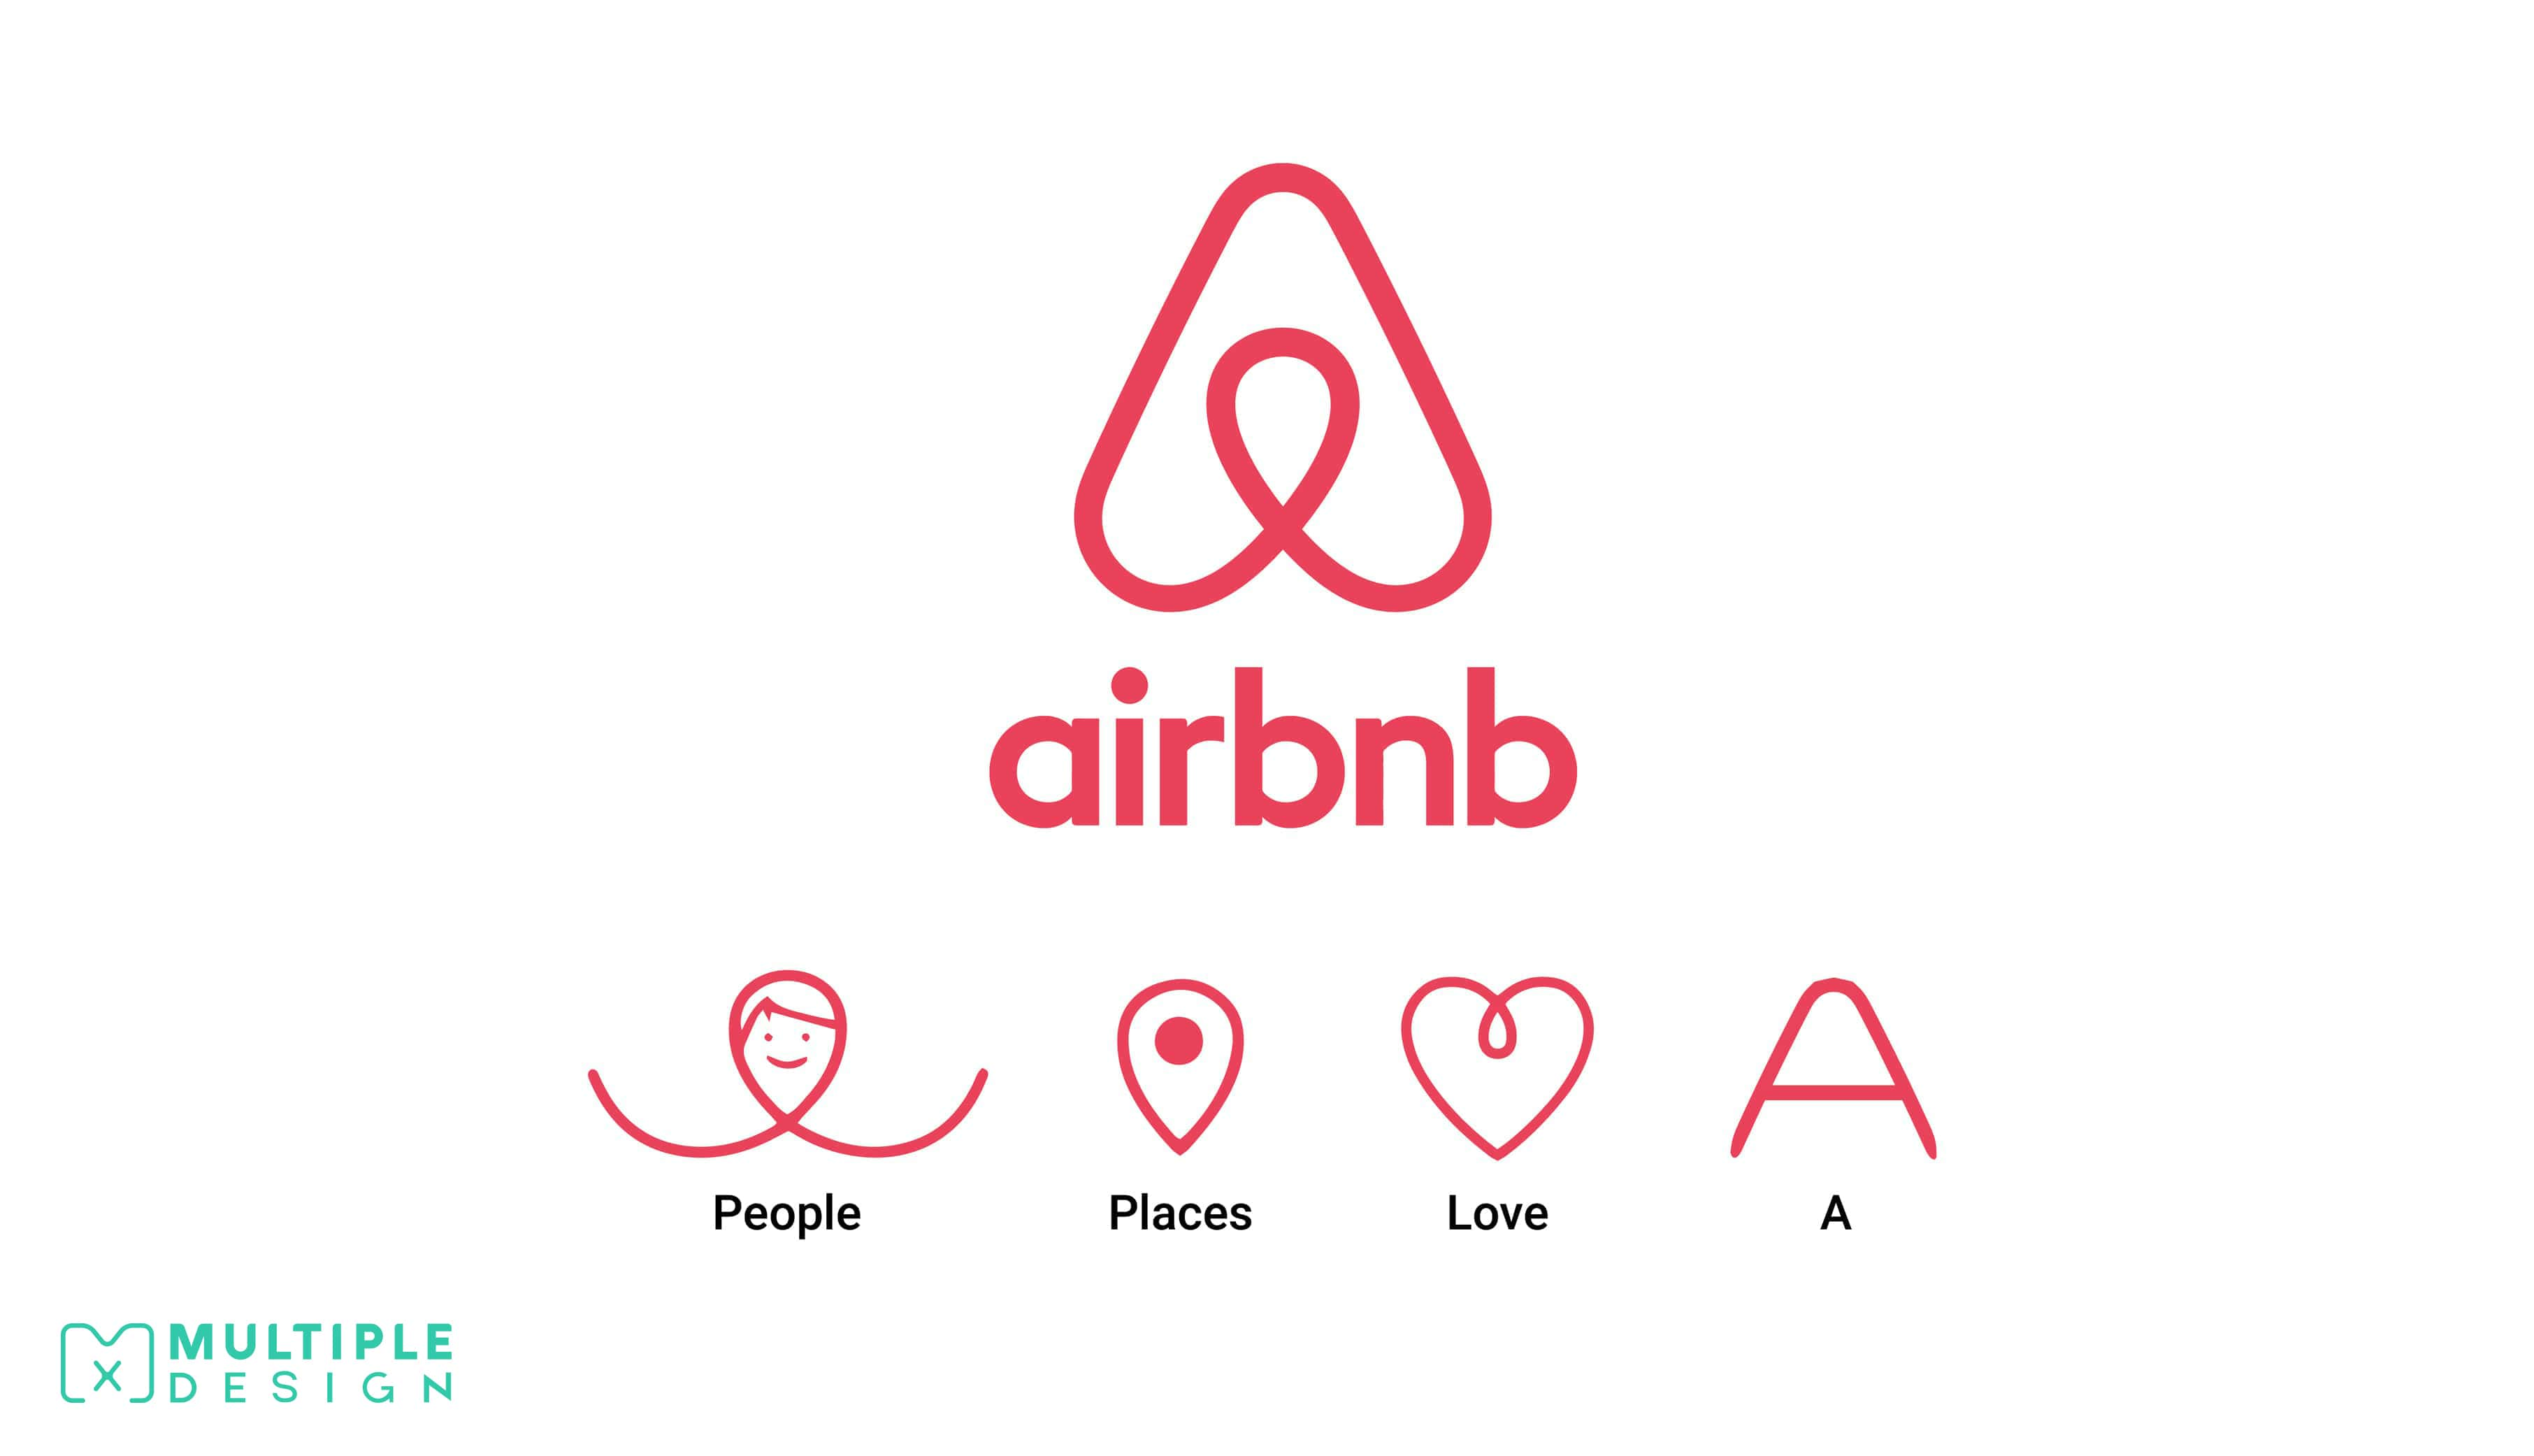 Airbnb logo, people, places, love, a